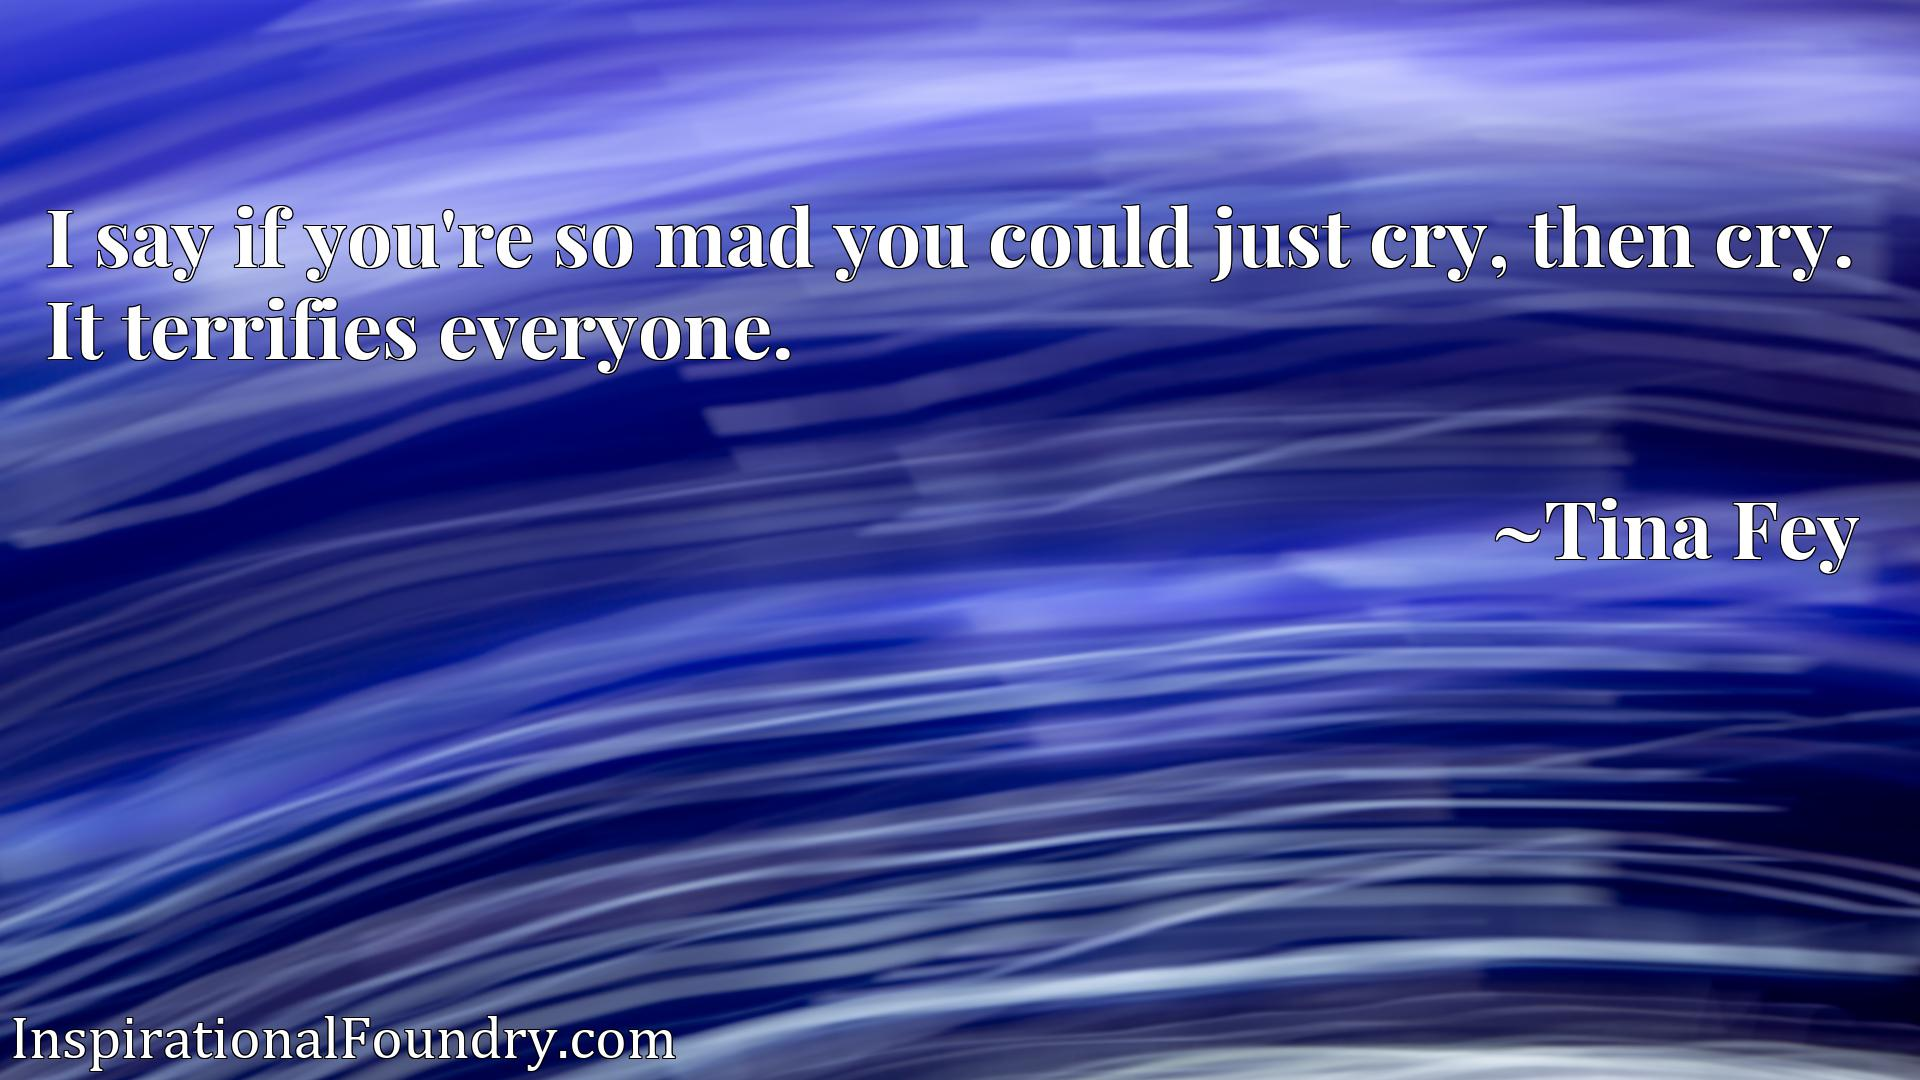 I say if you're so mad you could just cry, then cry. It terrifies everyone.